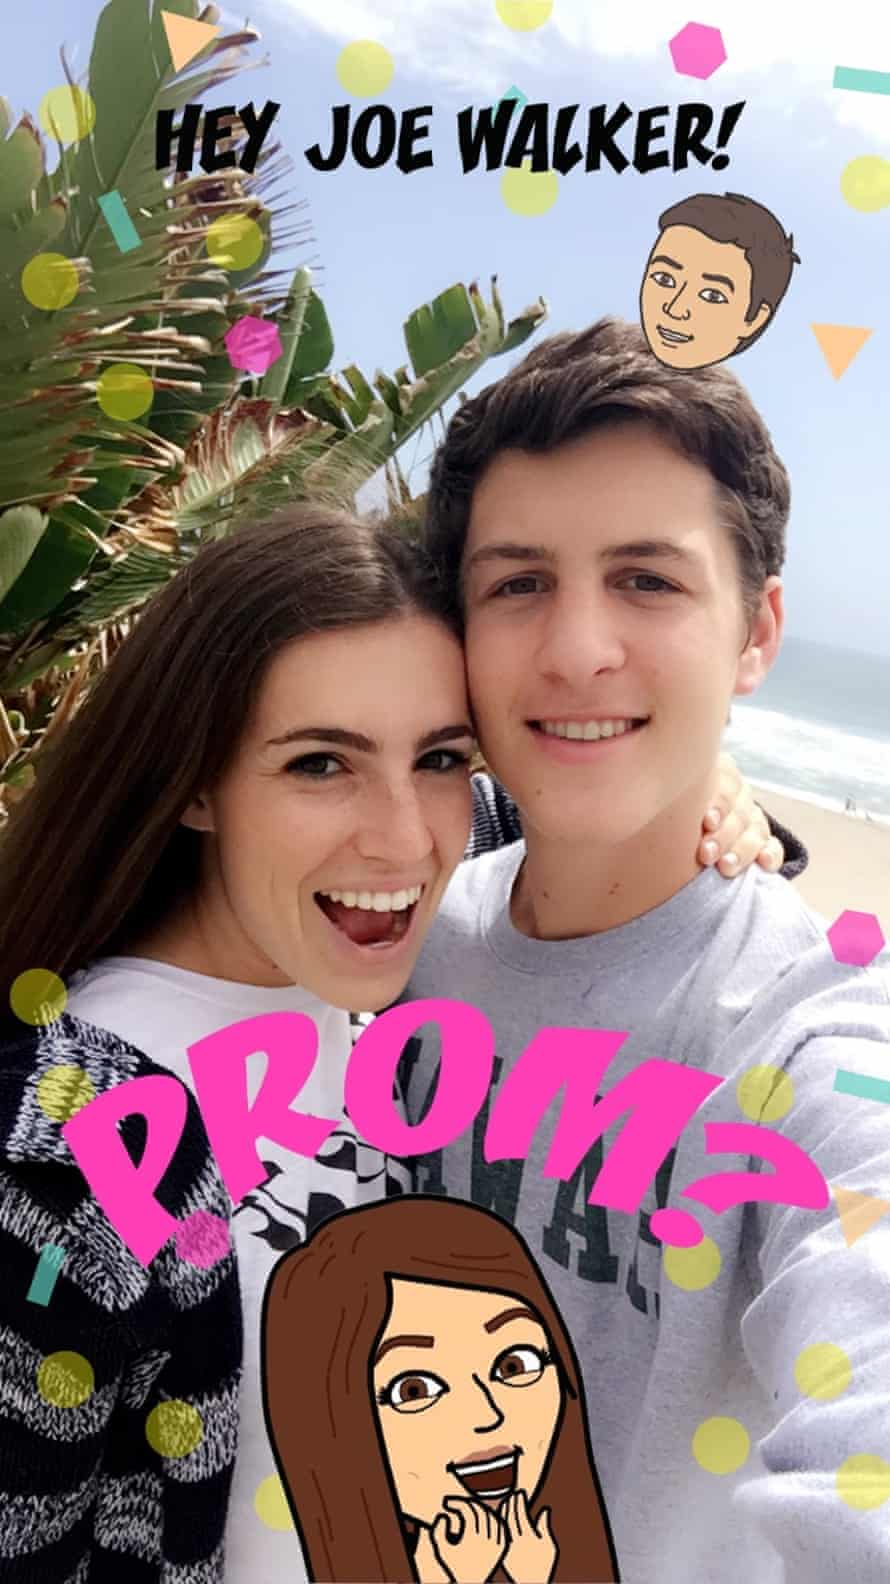 Megan Forbes, 18, uses a custom Snapchat filter to ask her boyfriend Joe Walker to prom.